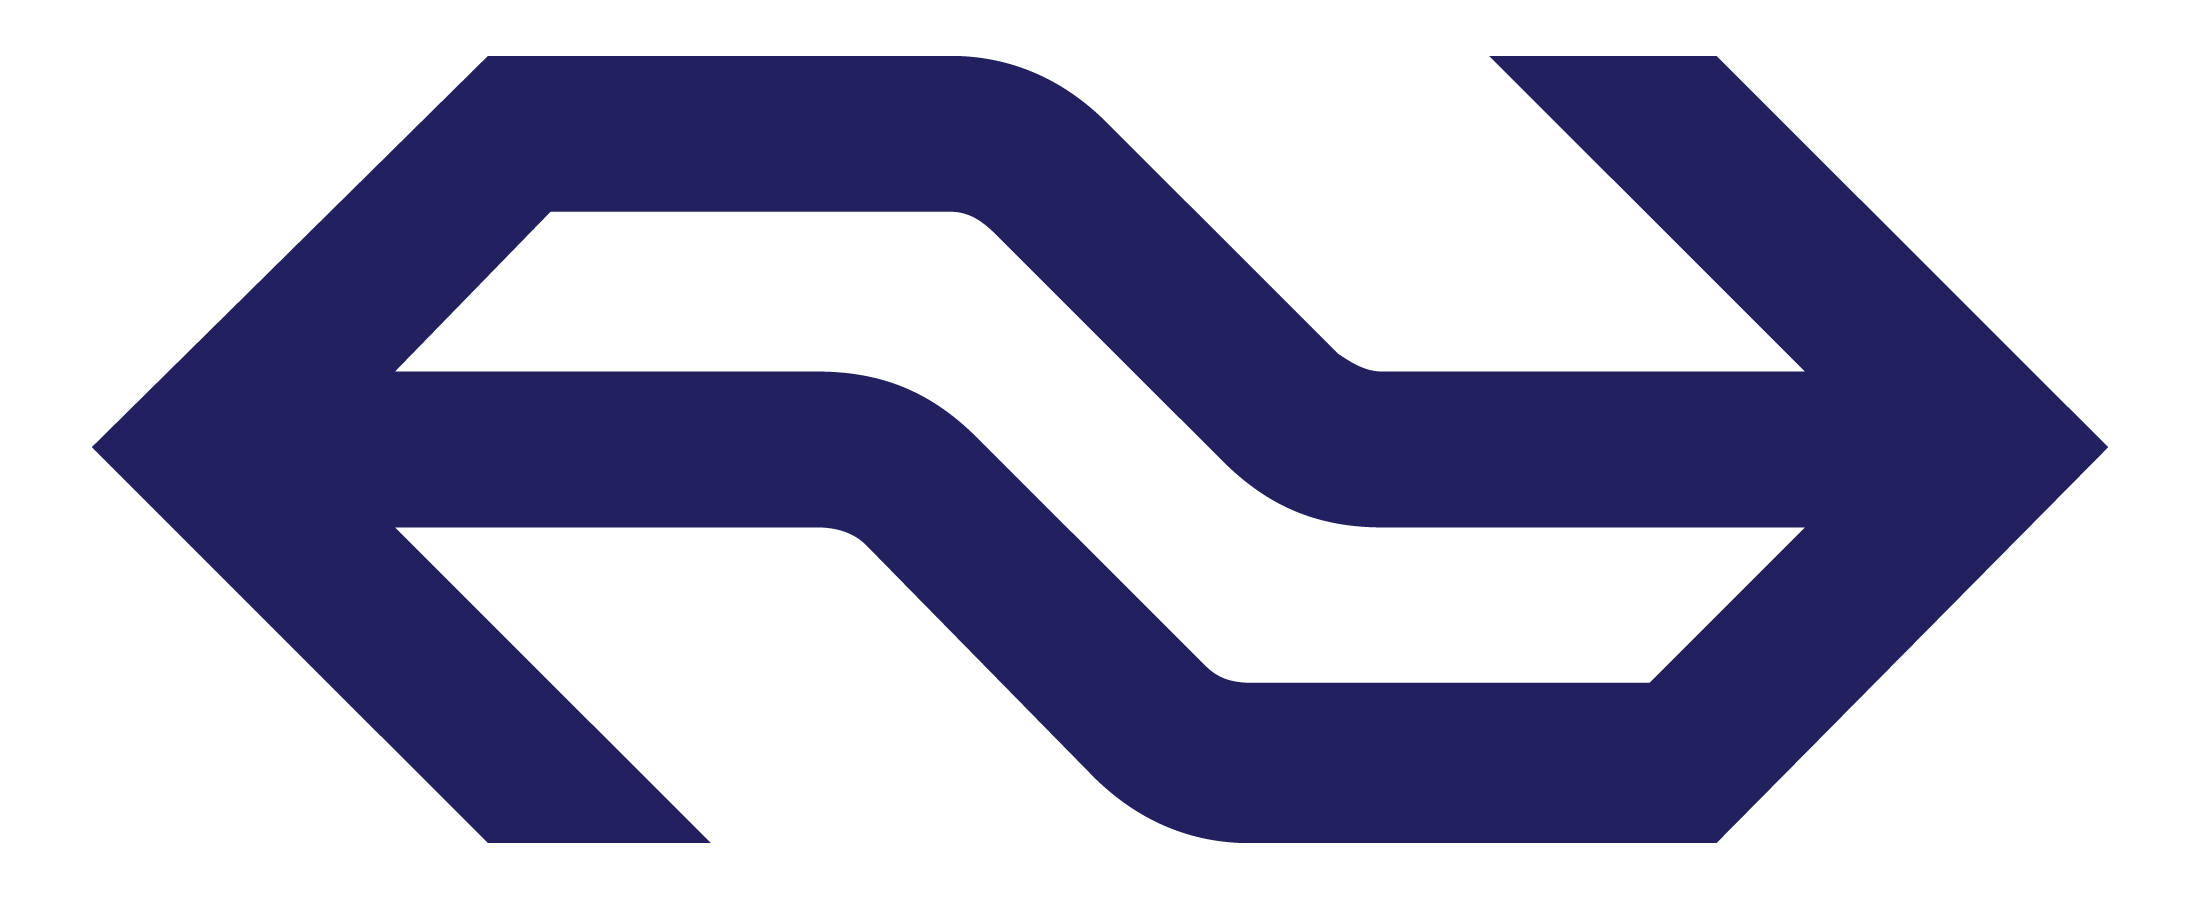 Dutch Railways